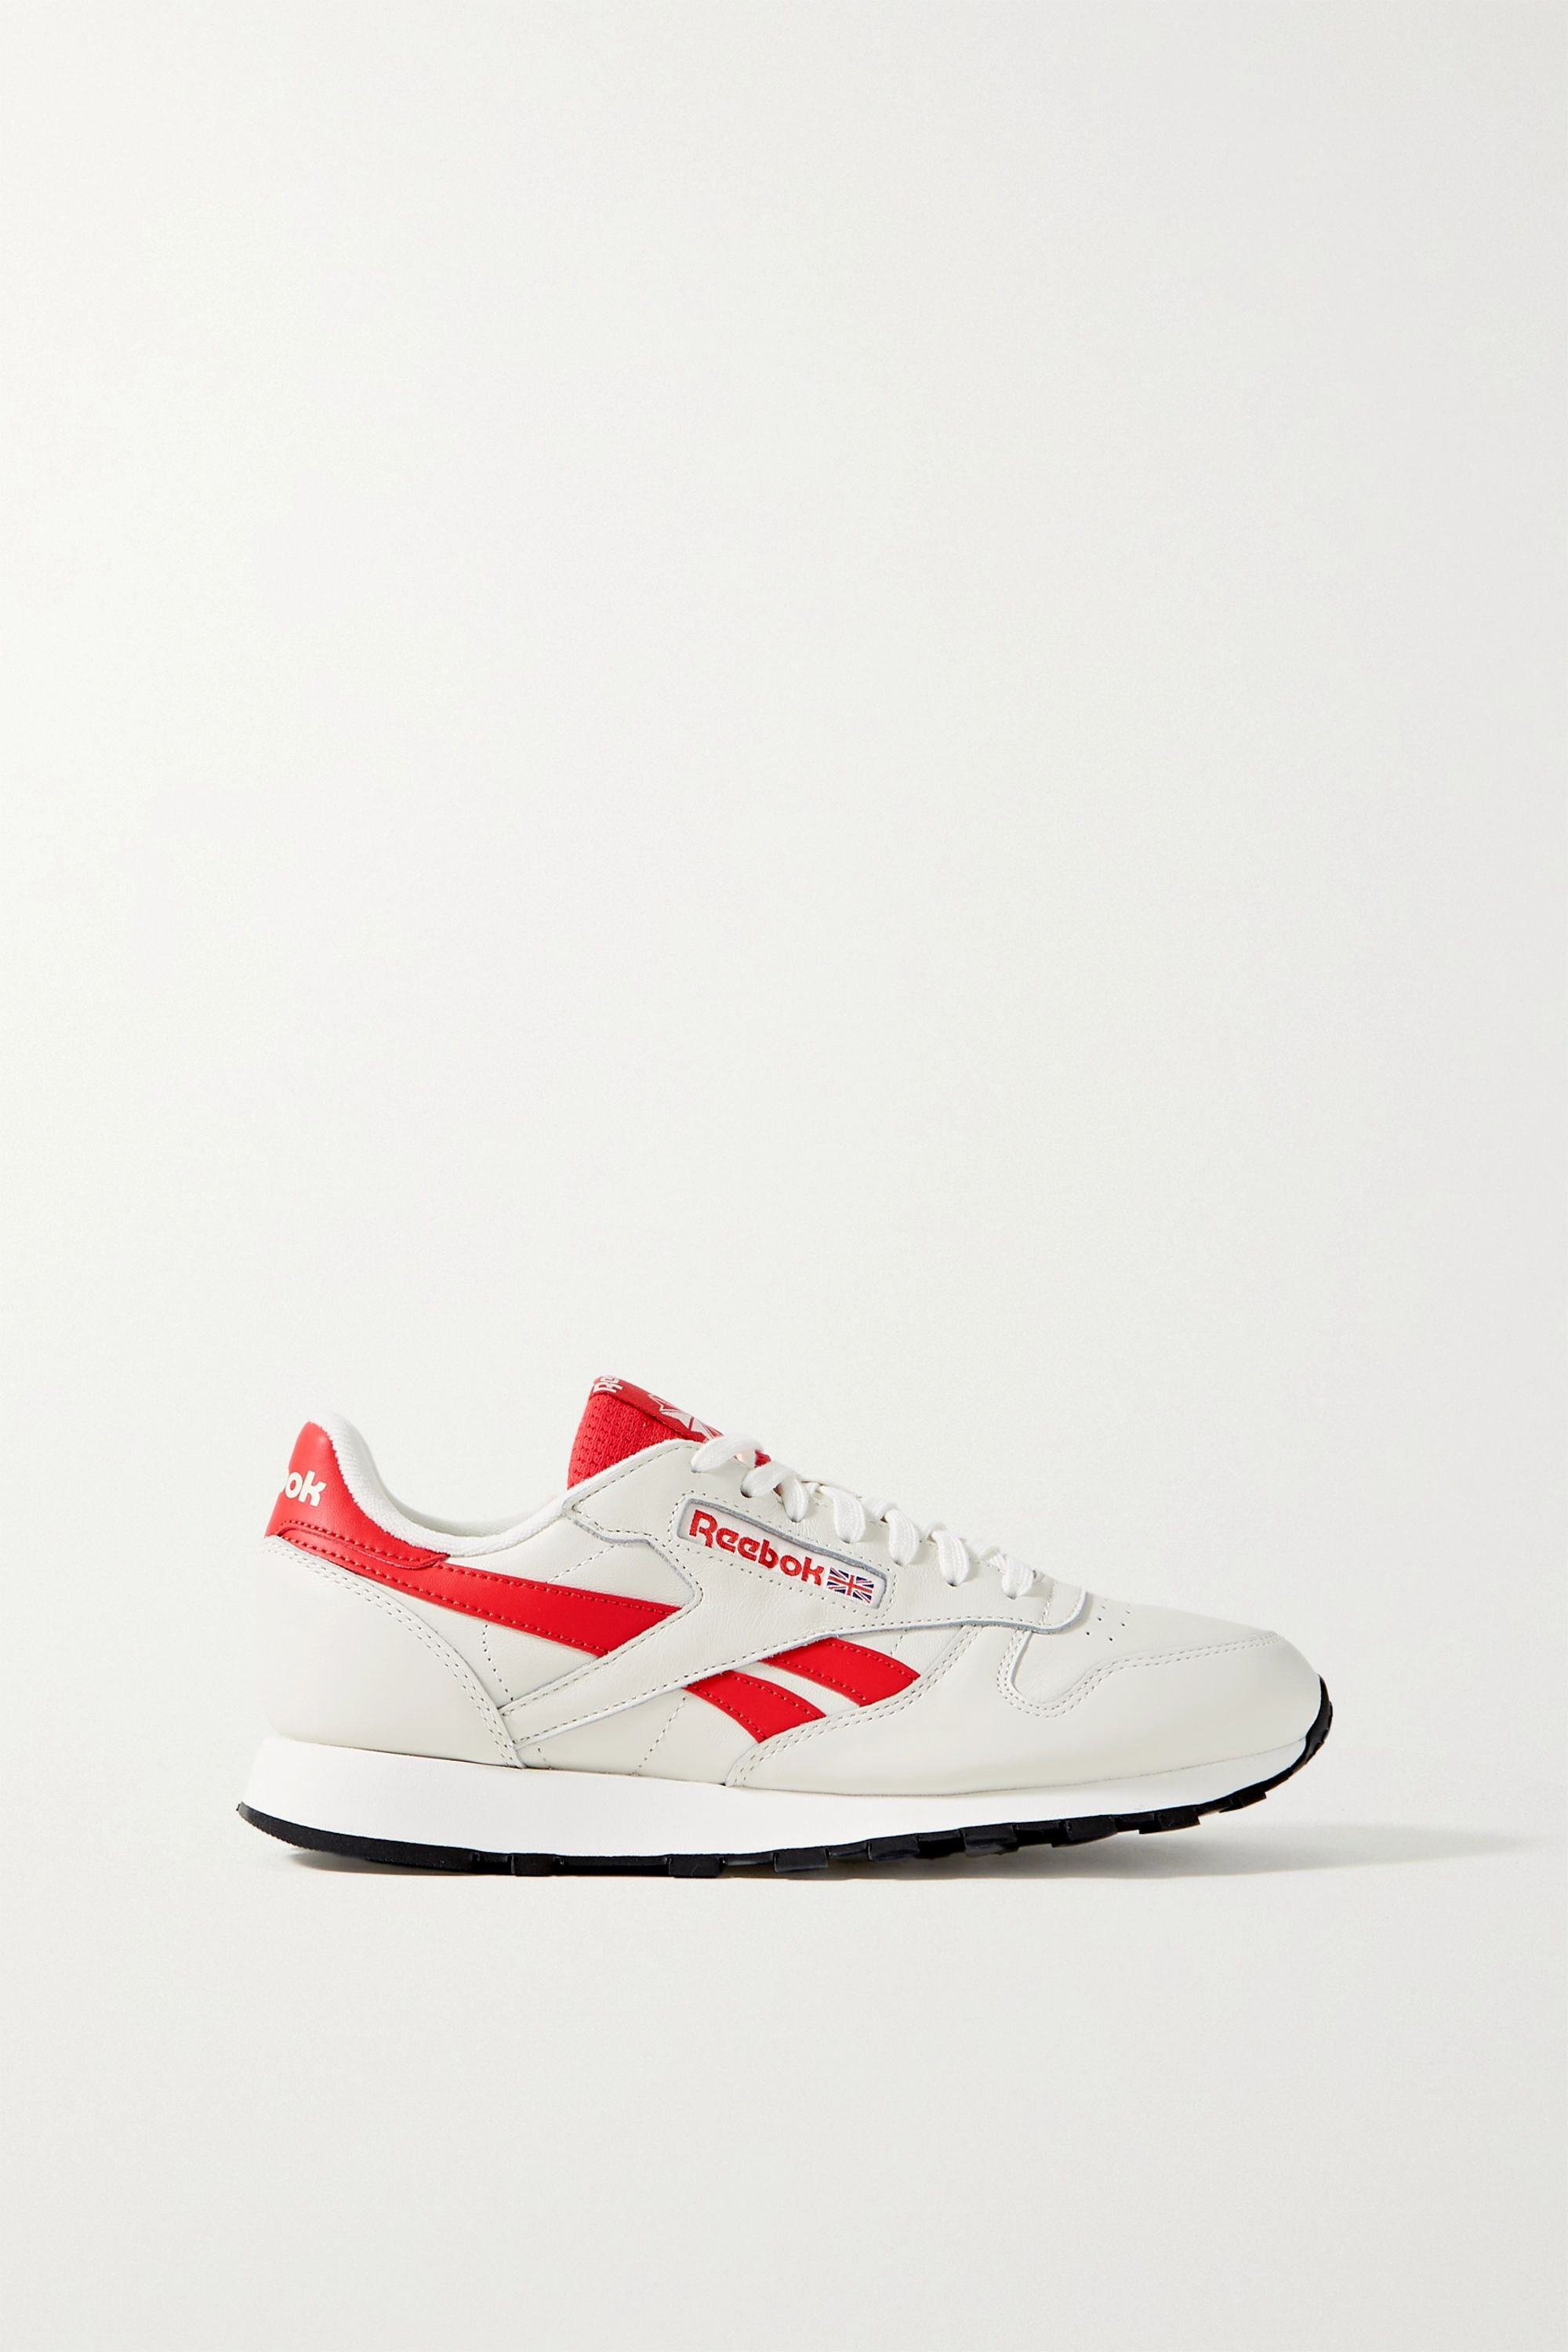 Off-white Classic leather and mesh